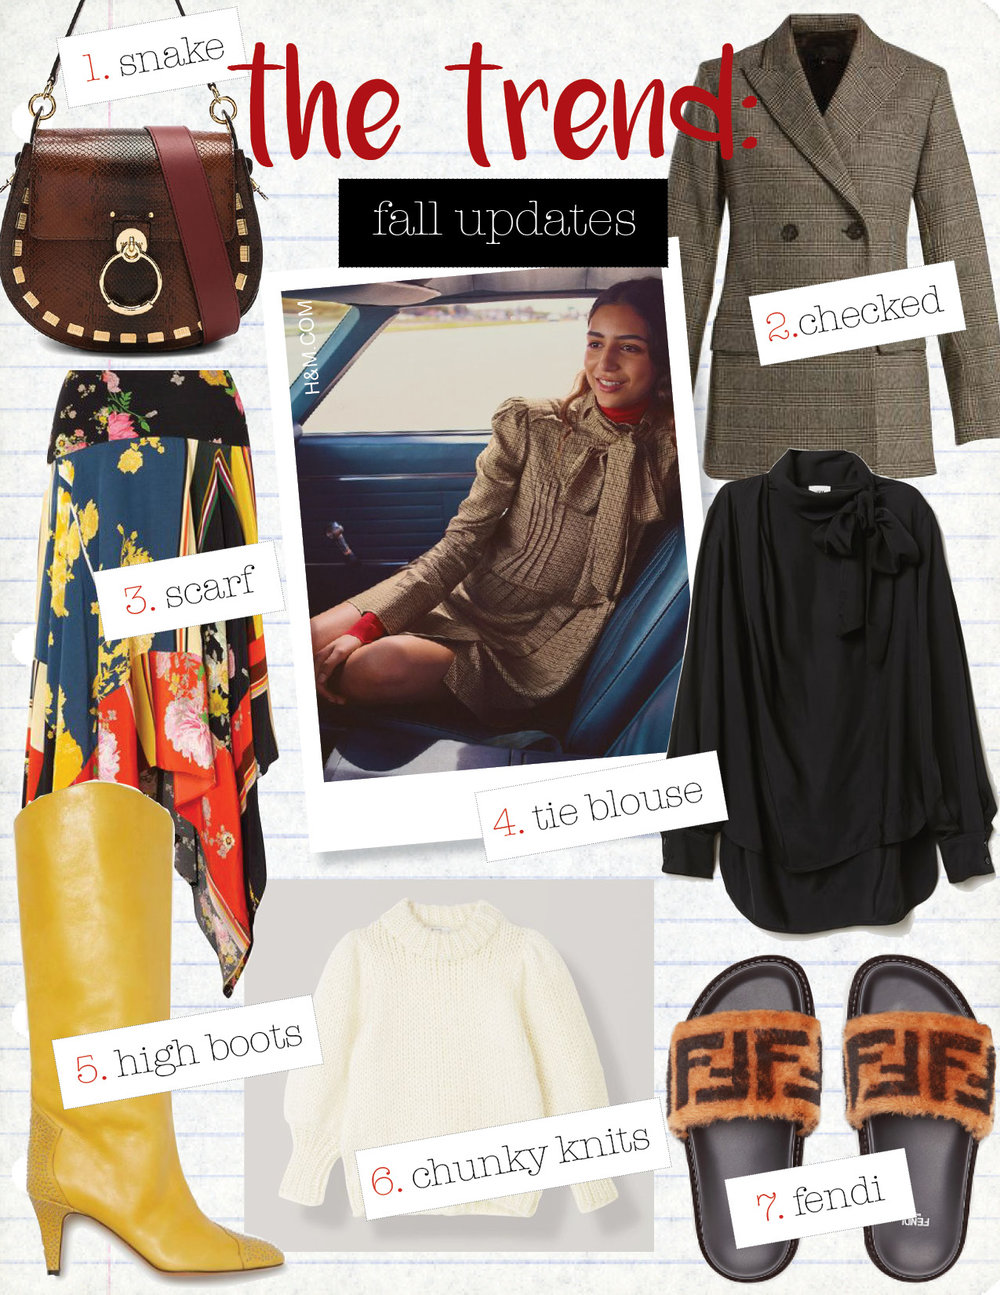 1. chloe tess printed watersnake shoulder bag, $2350,  fwrd.com  2. nili lotan leander prince of whales-check blazer, $1219,  matchesfashion.com  3. preen line eva asymmetric printed crepe de chine midi skirt, $540,  net-a-porter.com  4. h&m blouse with ties, $79,  hm.com  5. isabel marant lesten high boots, $1550,  isabelmarant.com  6. ganni juliard mohair puff sleeve pullover, $450,  ganni.com  7. fendi brown leather and sheepskin slides, $690,  fendi.com